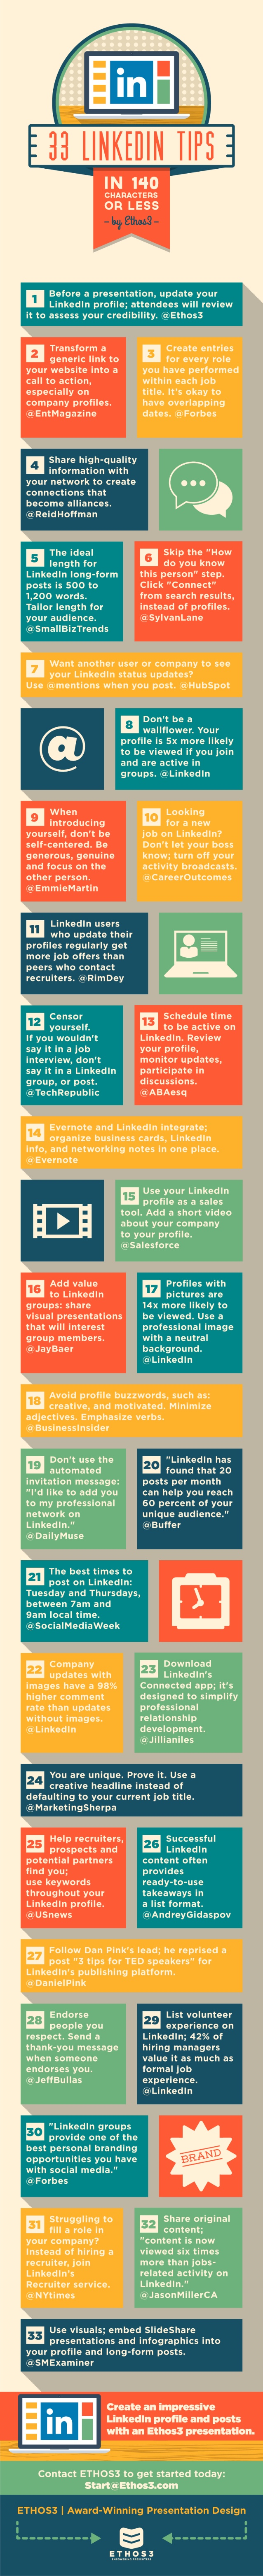 33-linkedin-tips-infographic